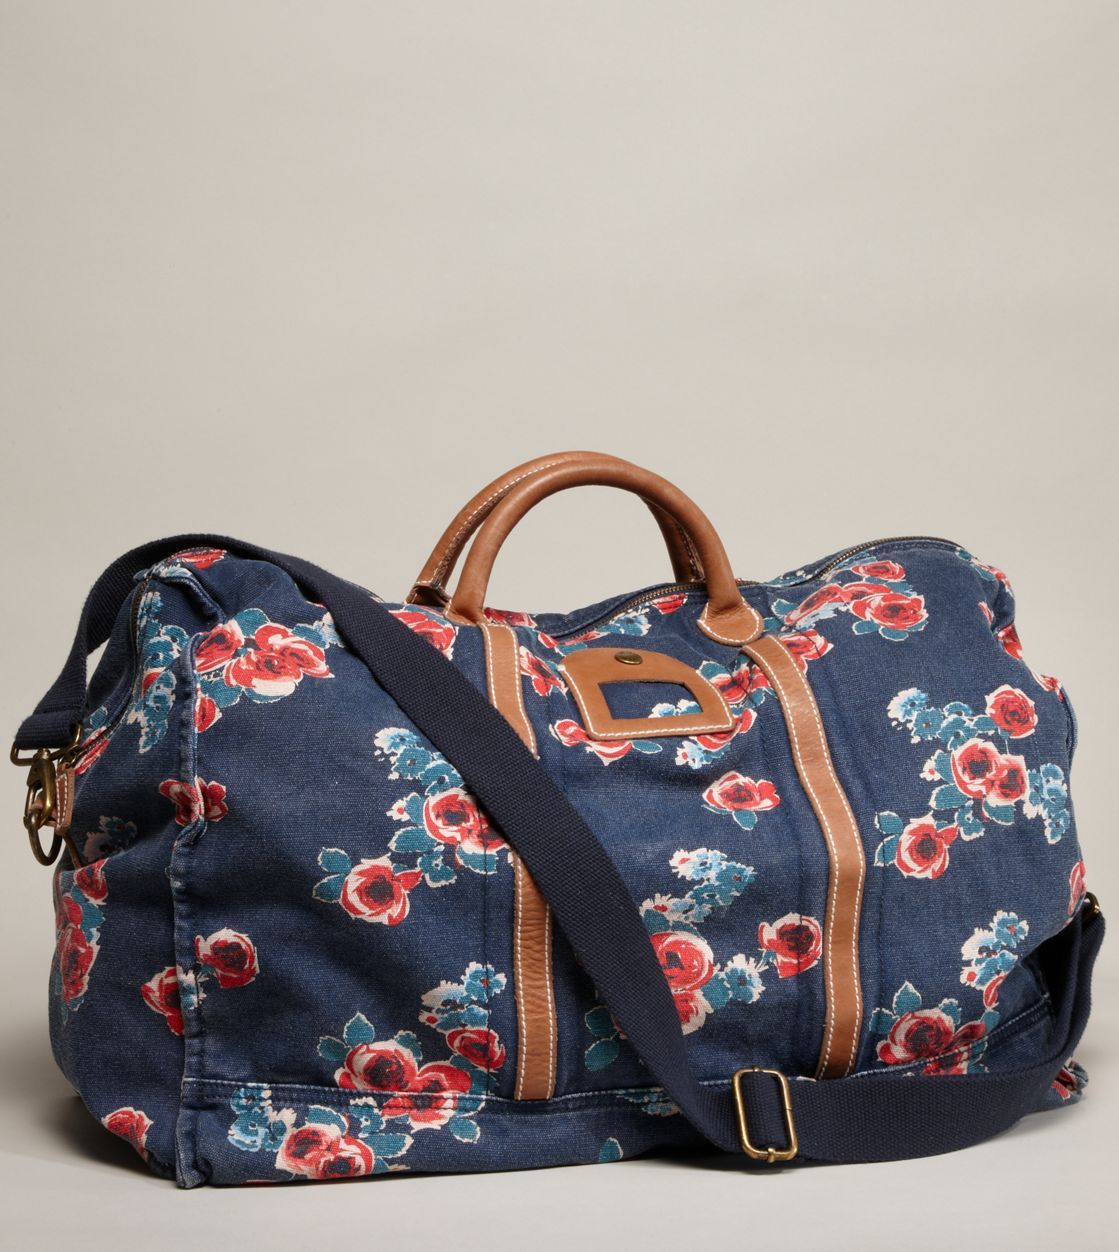 AEO Canvas Duffel Bag | Style // Bags & Clutches